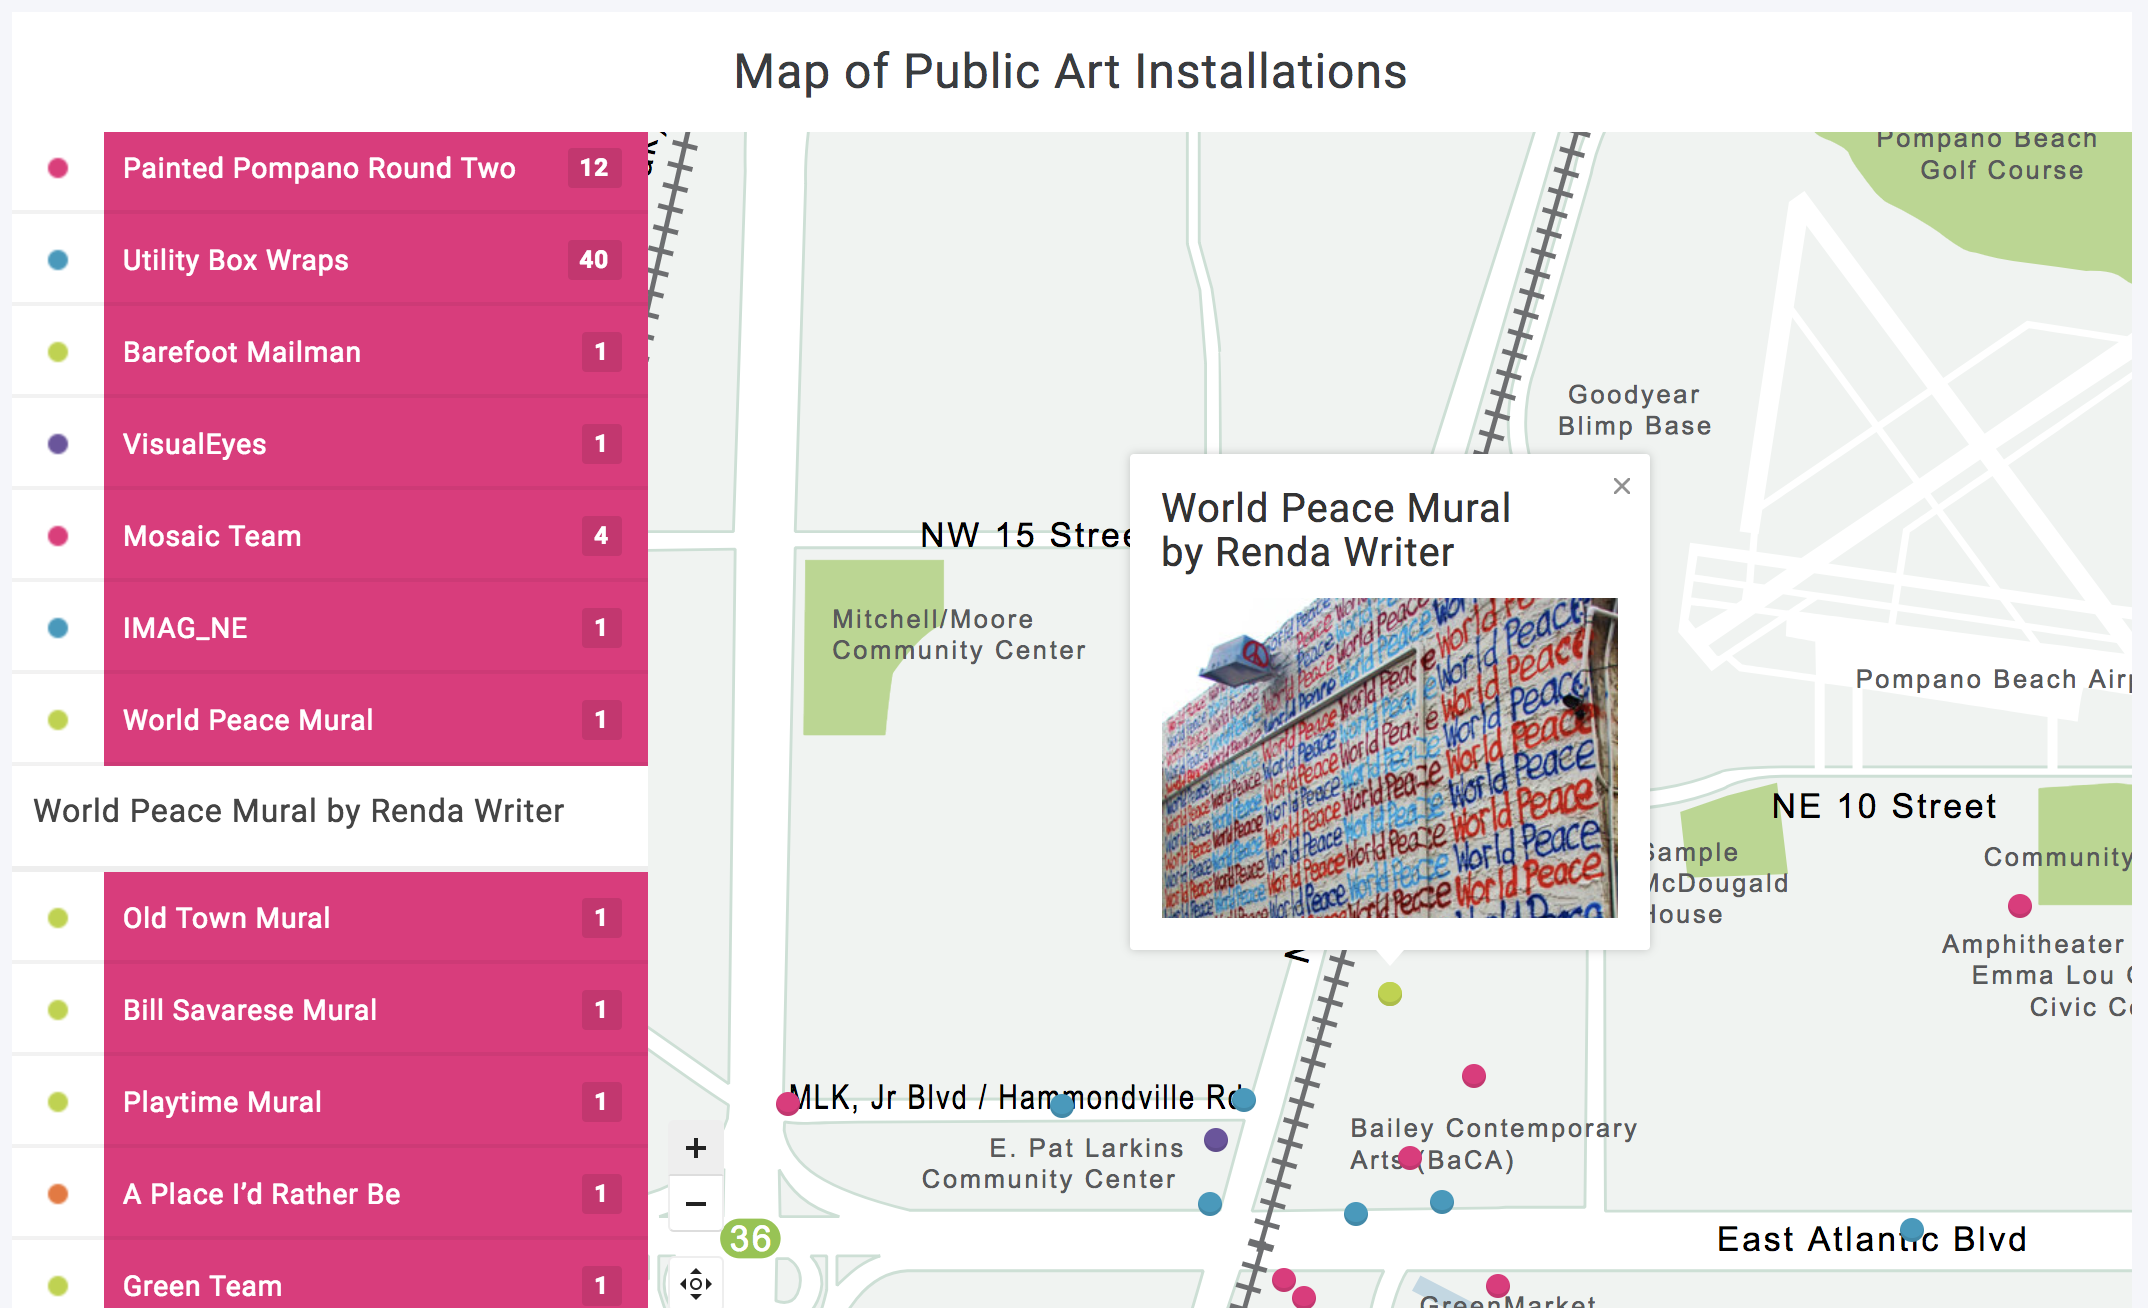 Pompano Beach Arts  uses  Mapplic  for their map of public art.